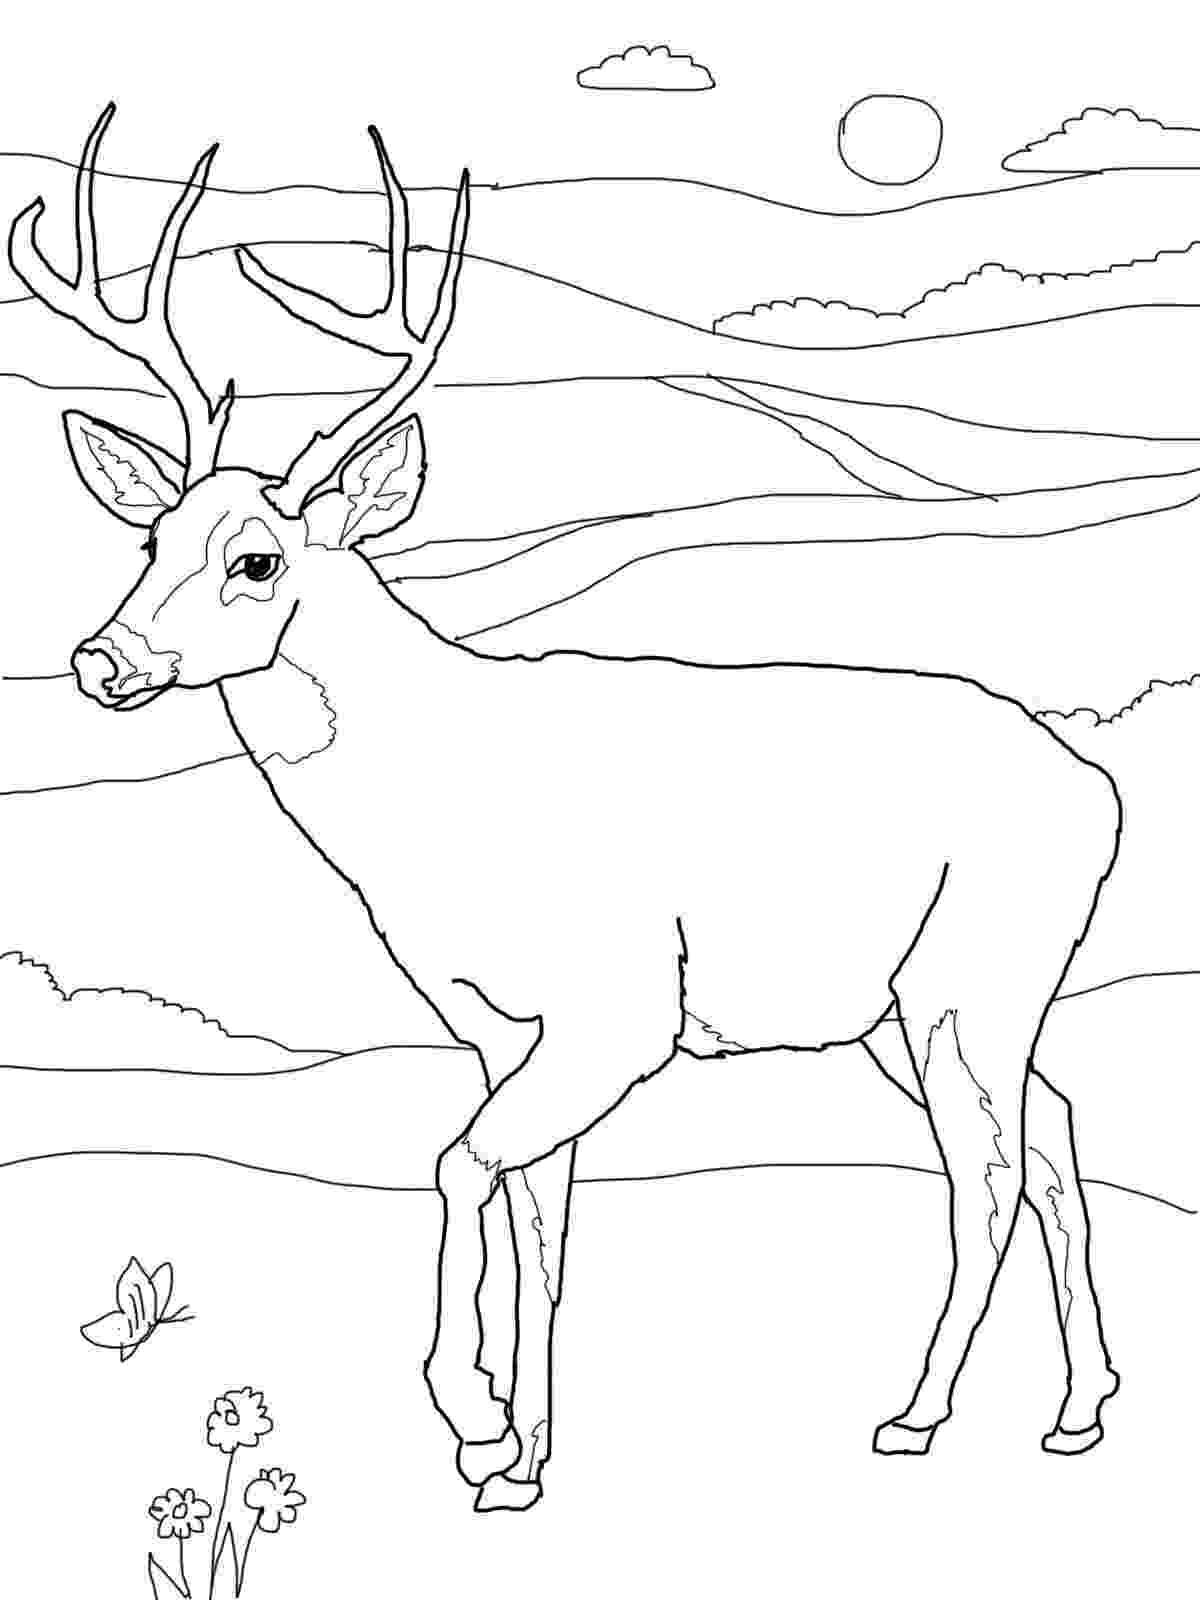 pictures of deers to color free printable deer coloring pages for kids deers color of pictures to